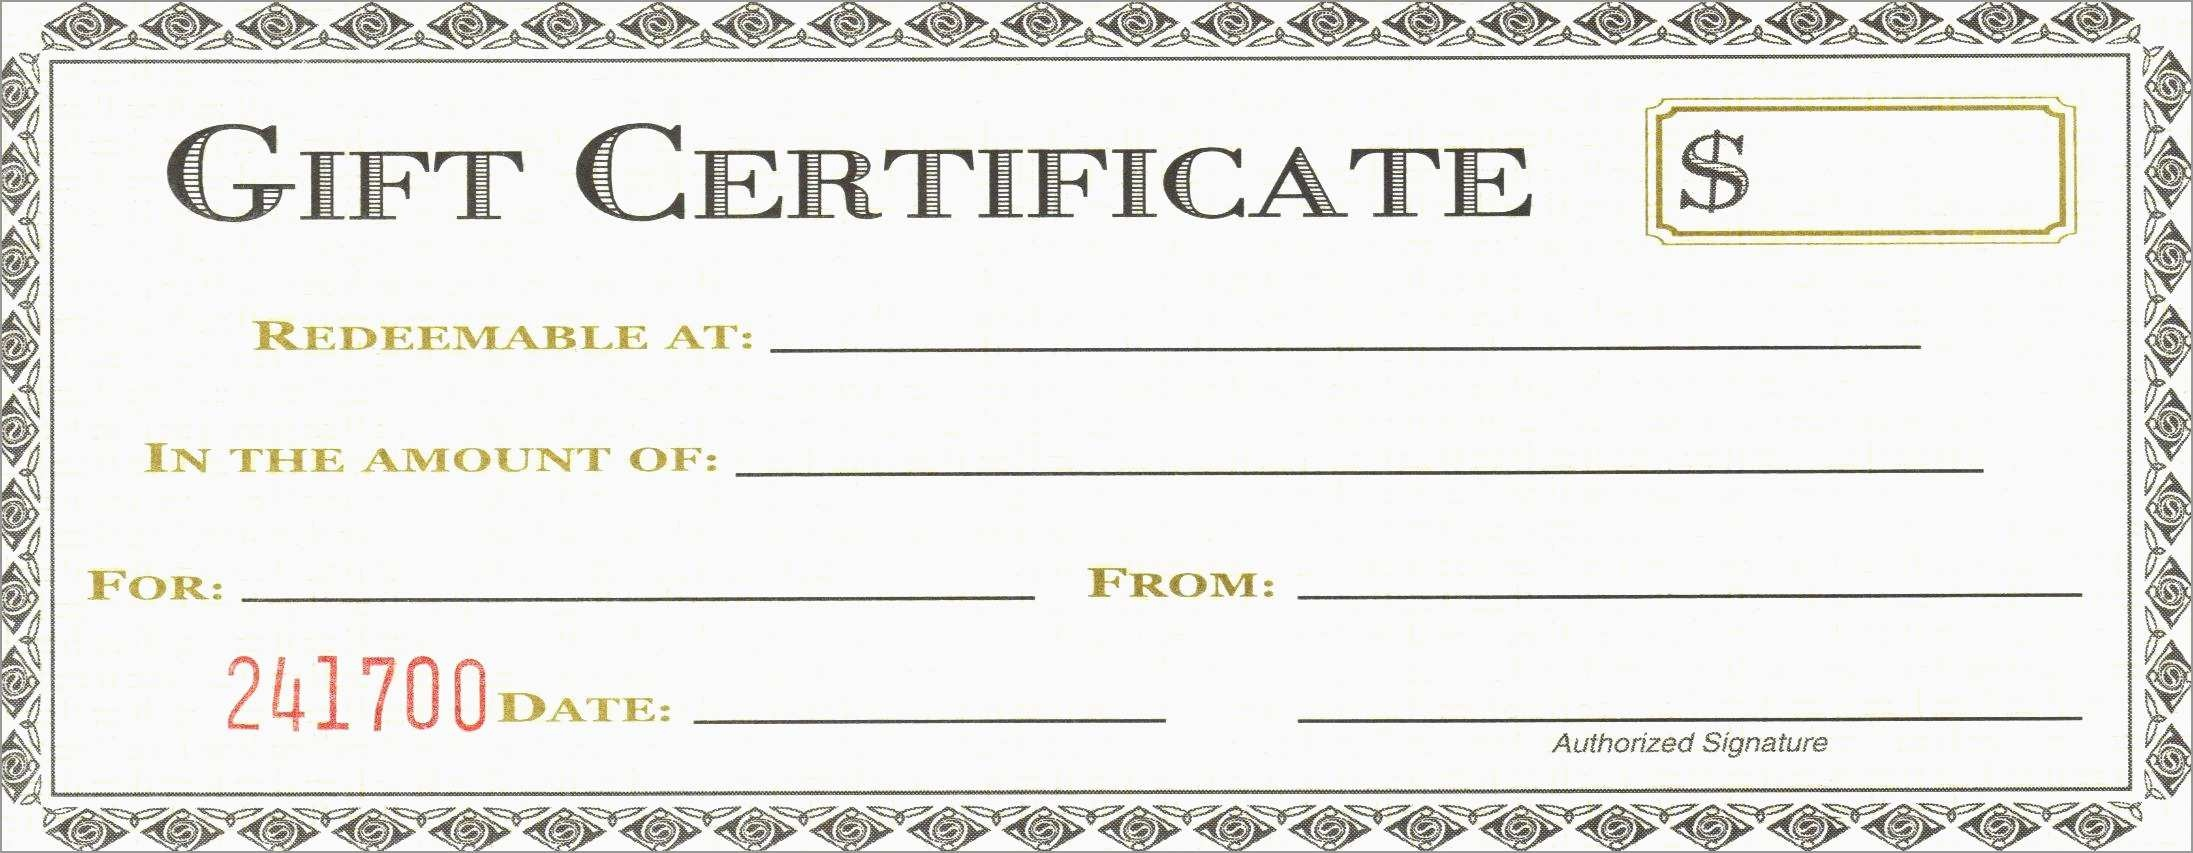 New Free Printable Massage Gift Certificate Templates | Best Of Template - Free Printable Gift Certificate Templates For Massage